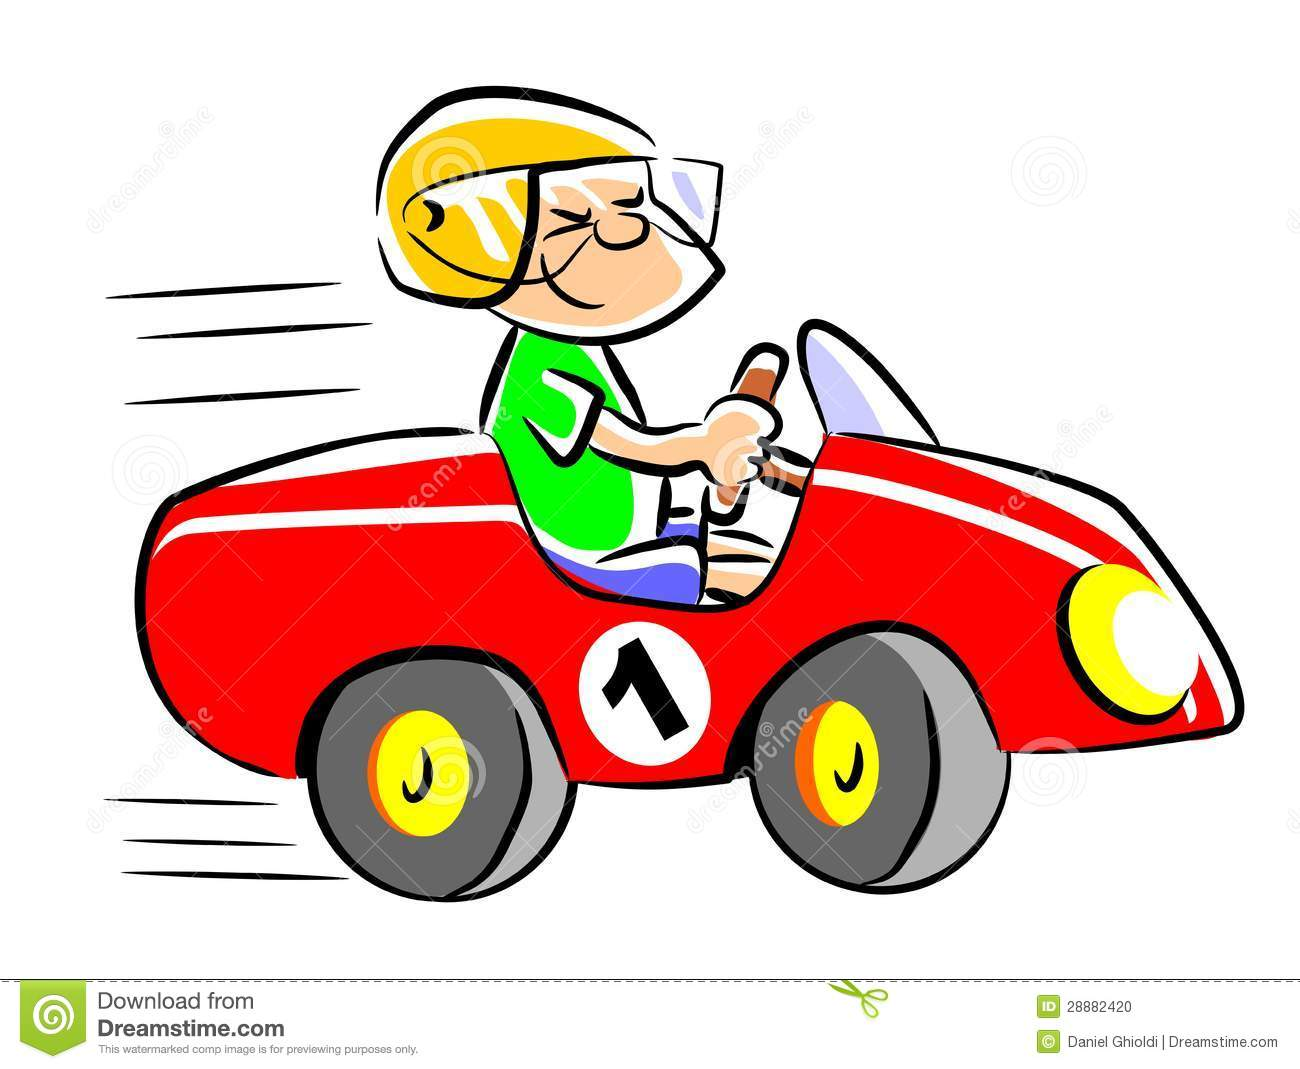 Clipart racer graphic royalty free library Animated Race Car Clipart   Free download best Animated Race Car ... graphic royalty free library